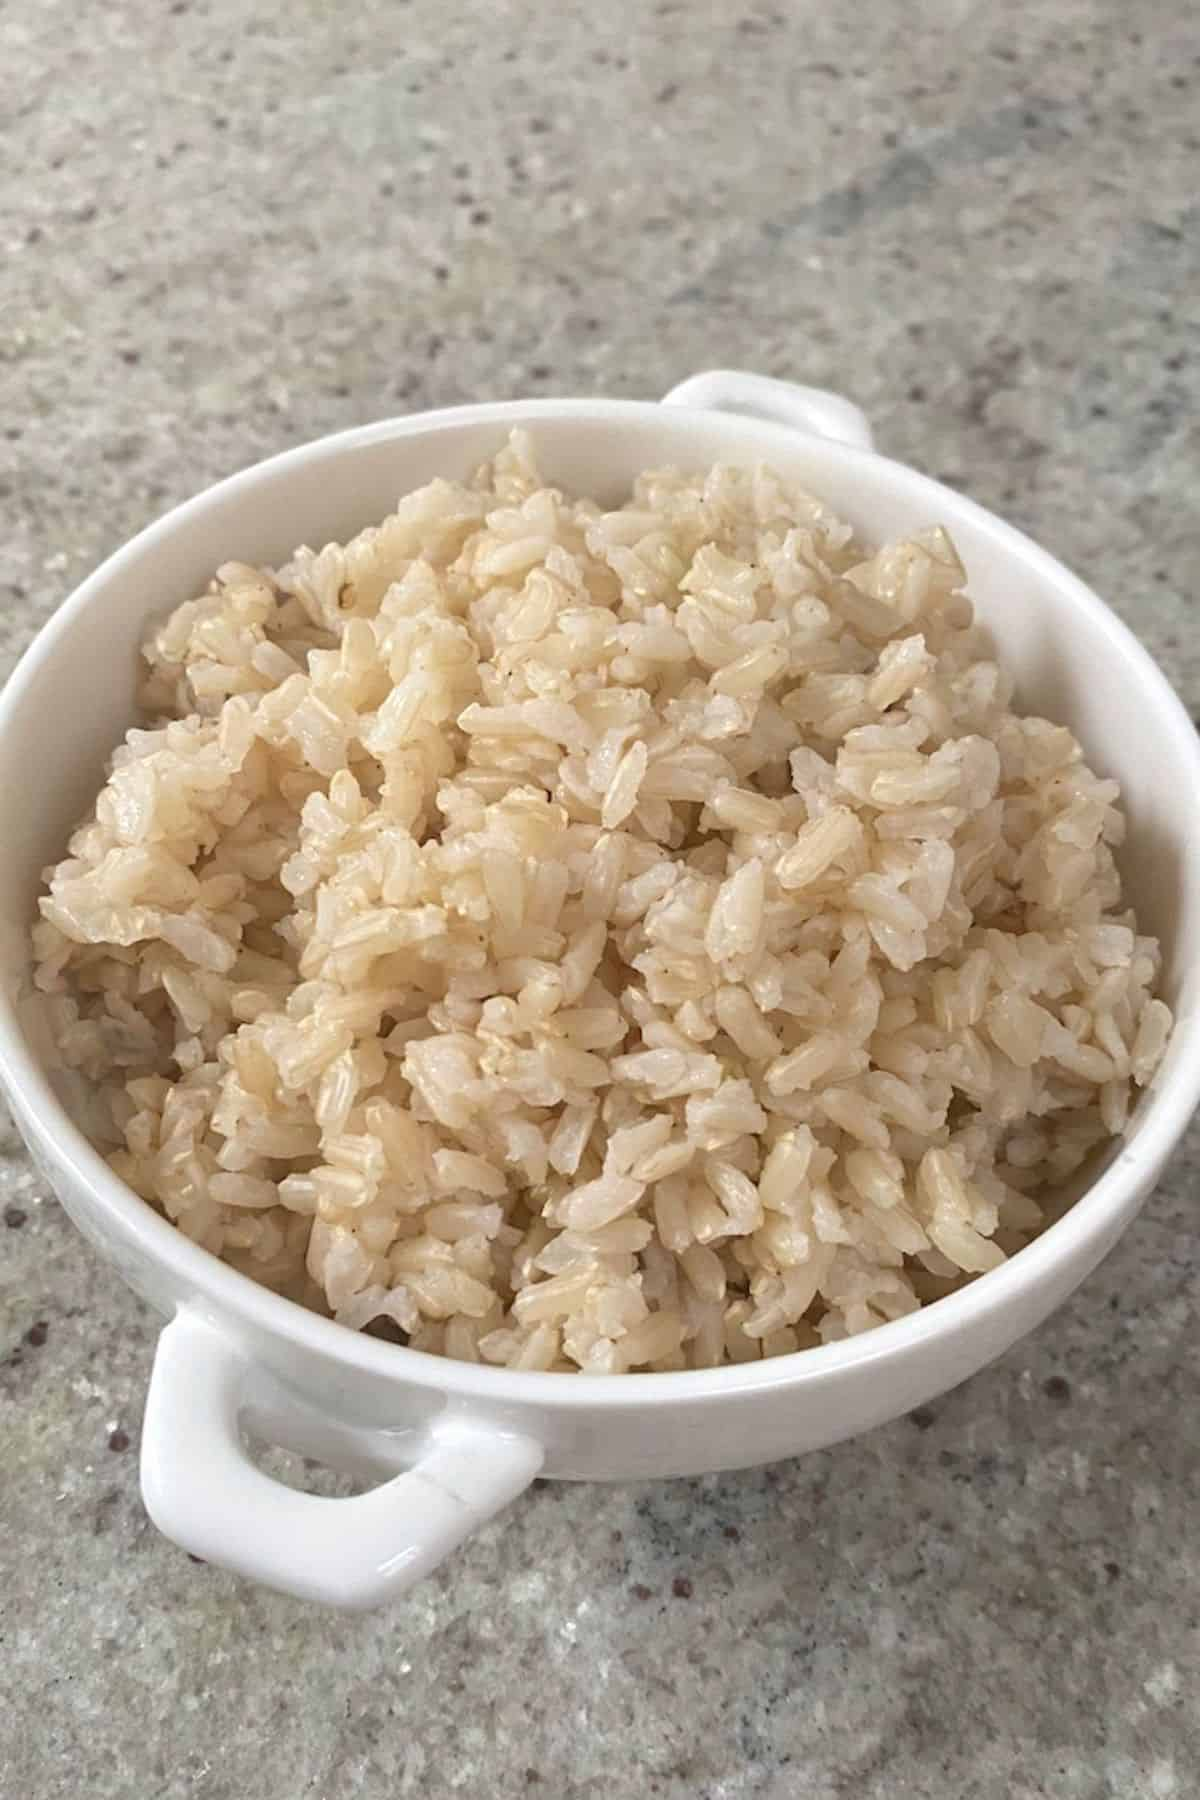 Brown rice in a small bowl